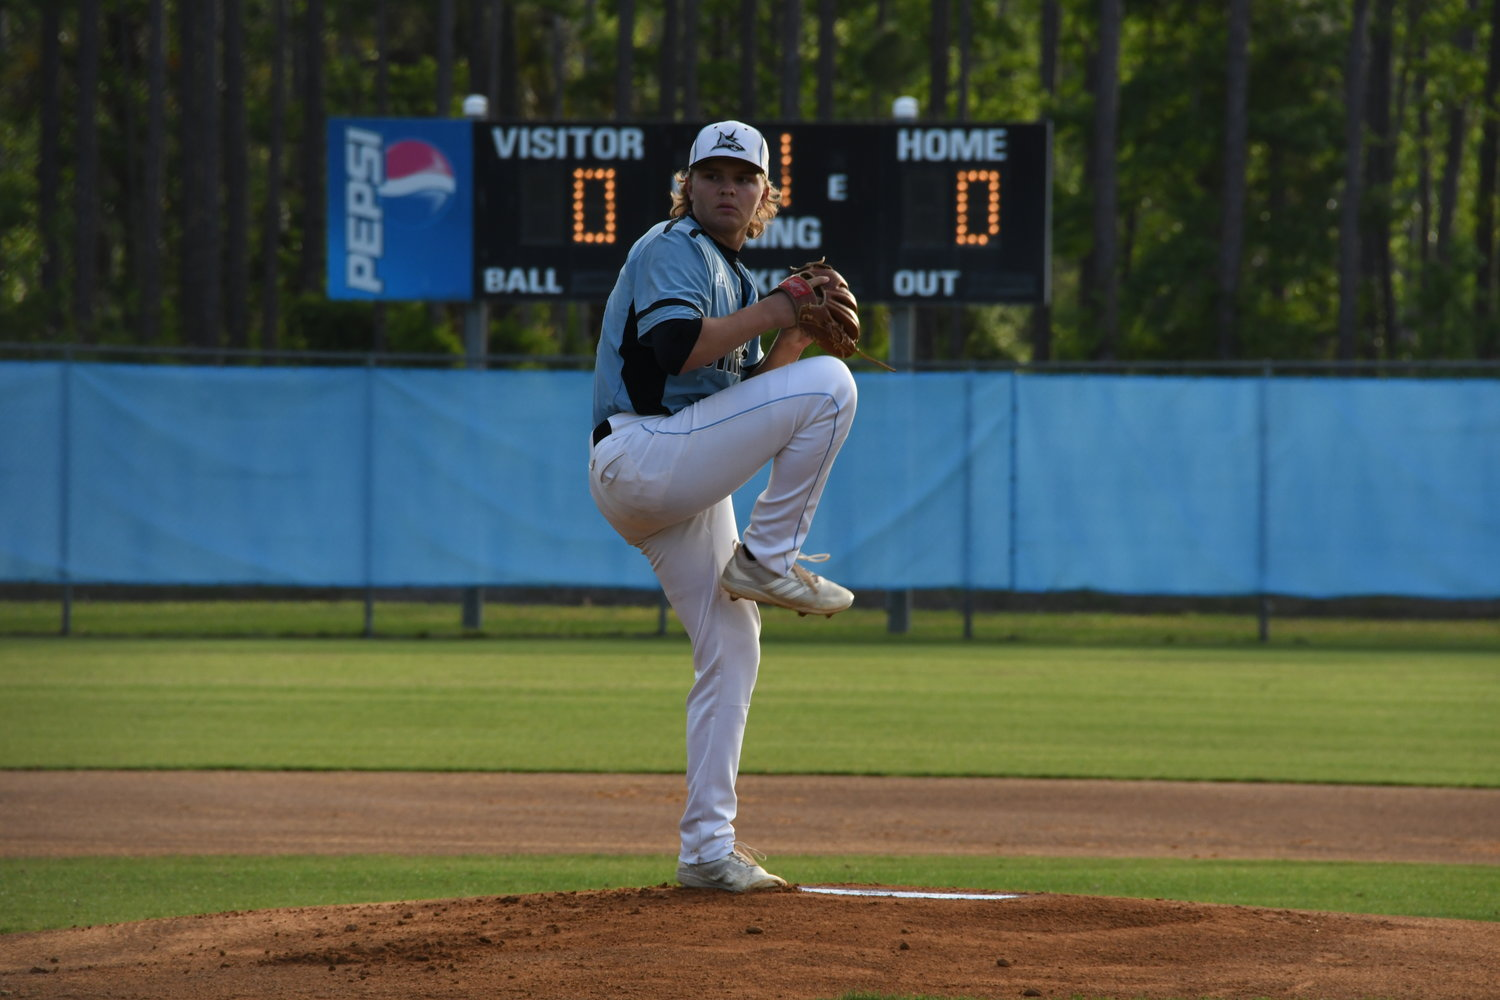 Ponte Vedra Pitcher Brody Maynard attempts a pitch for the Sharks against Ridgeview on Thursday, May 9. Maynard shut out Ridgeview while allowing the visitors just one hit.